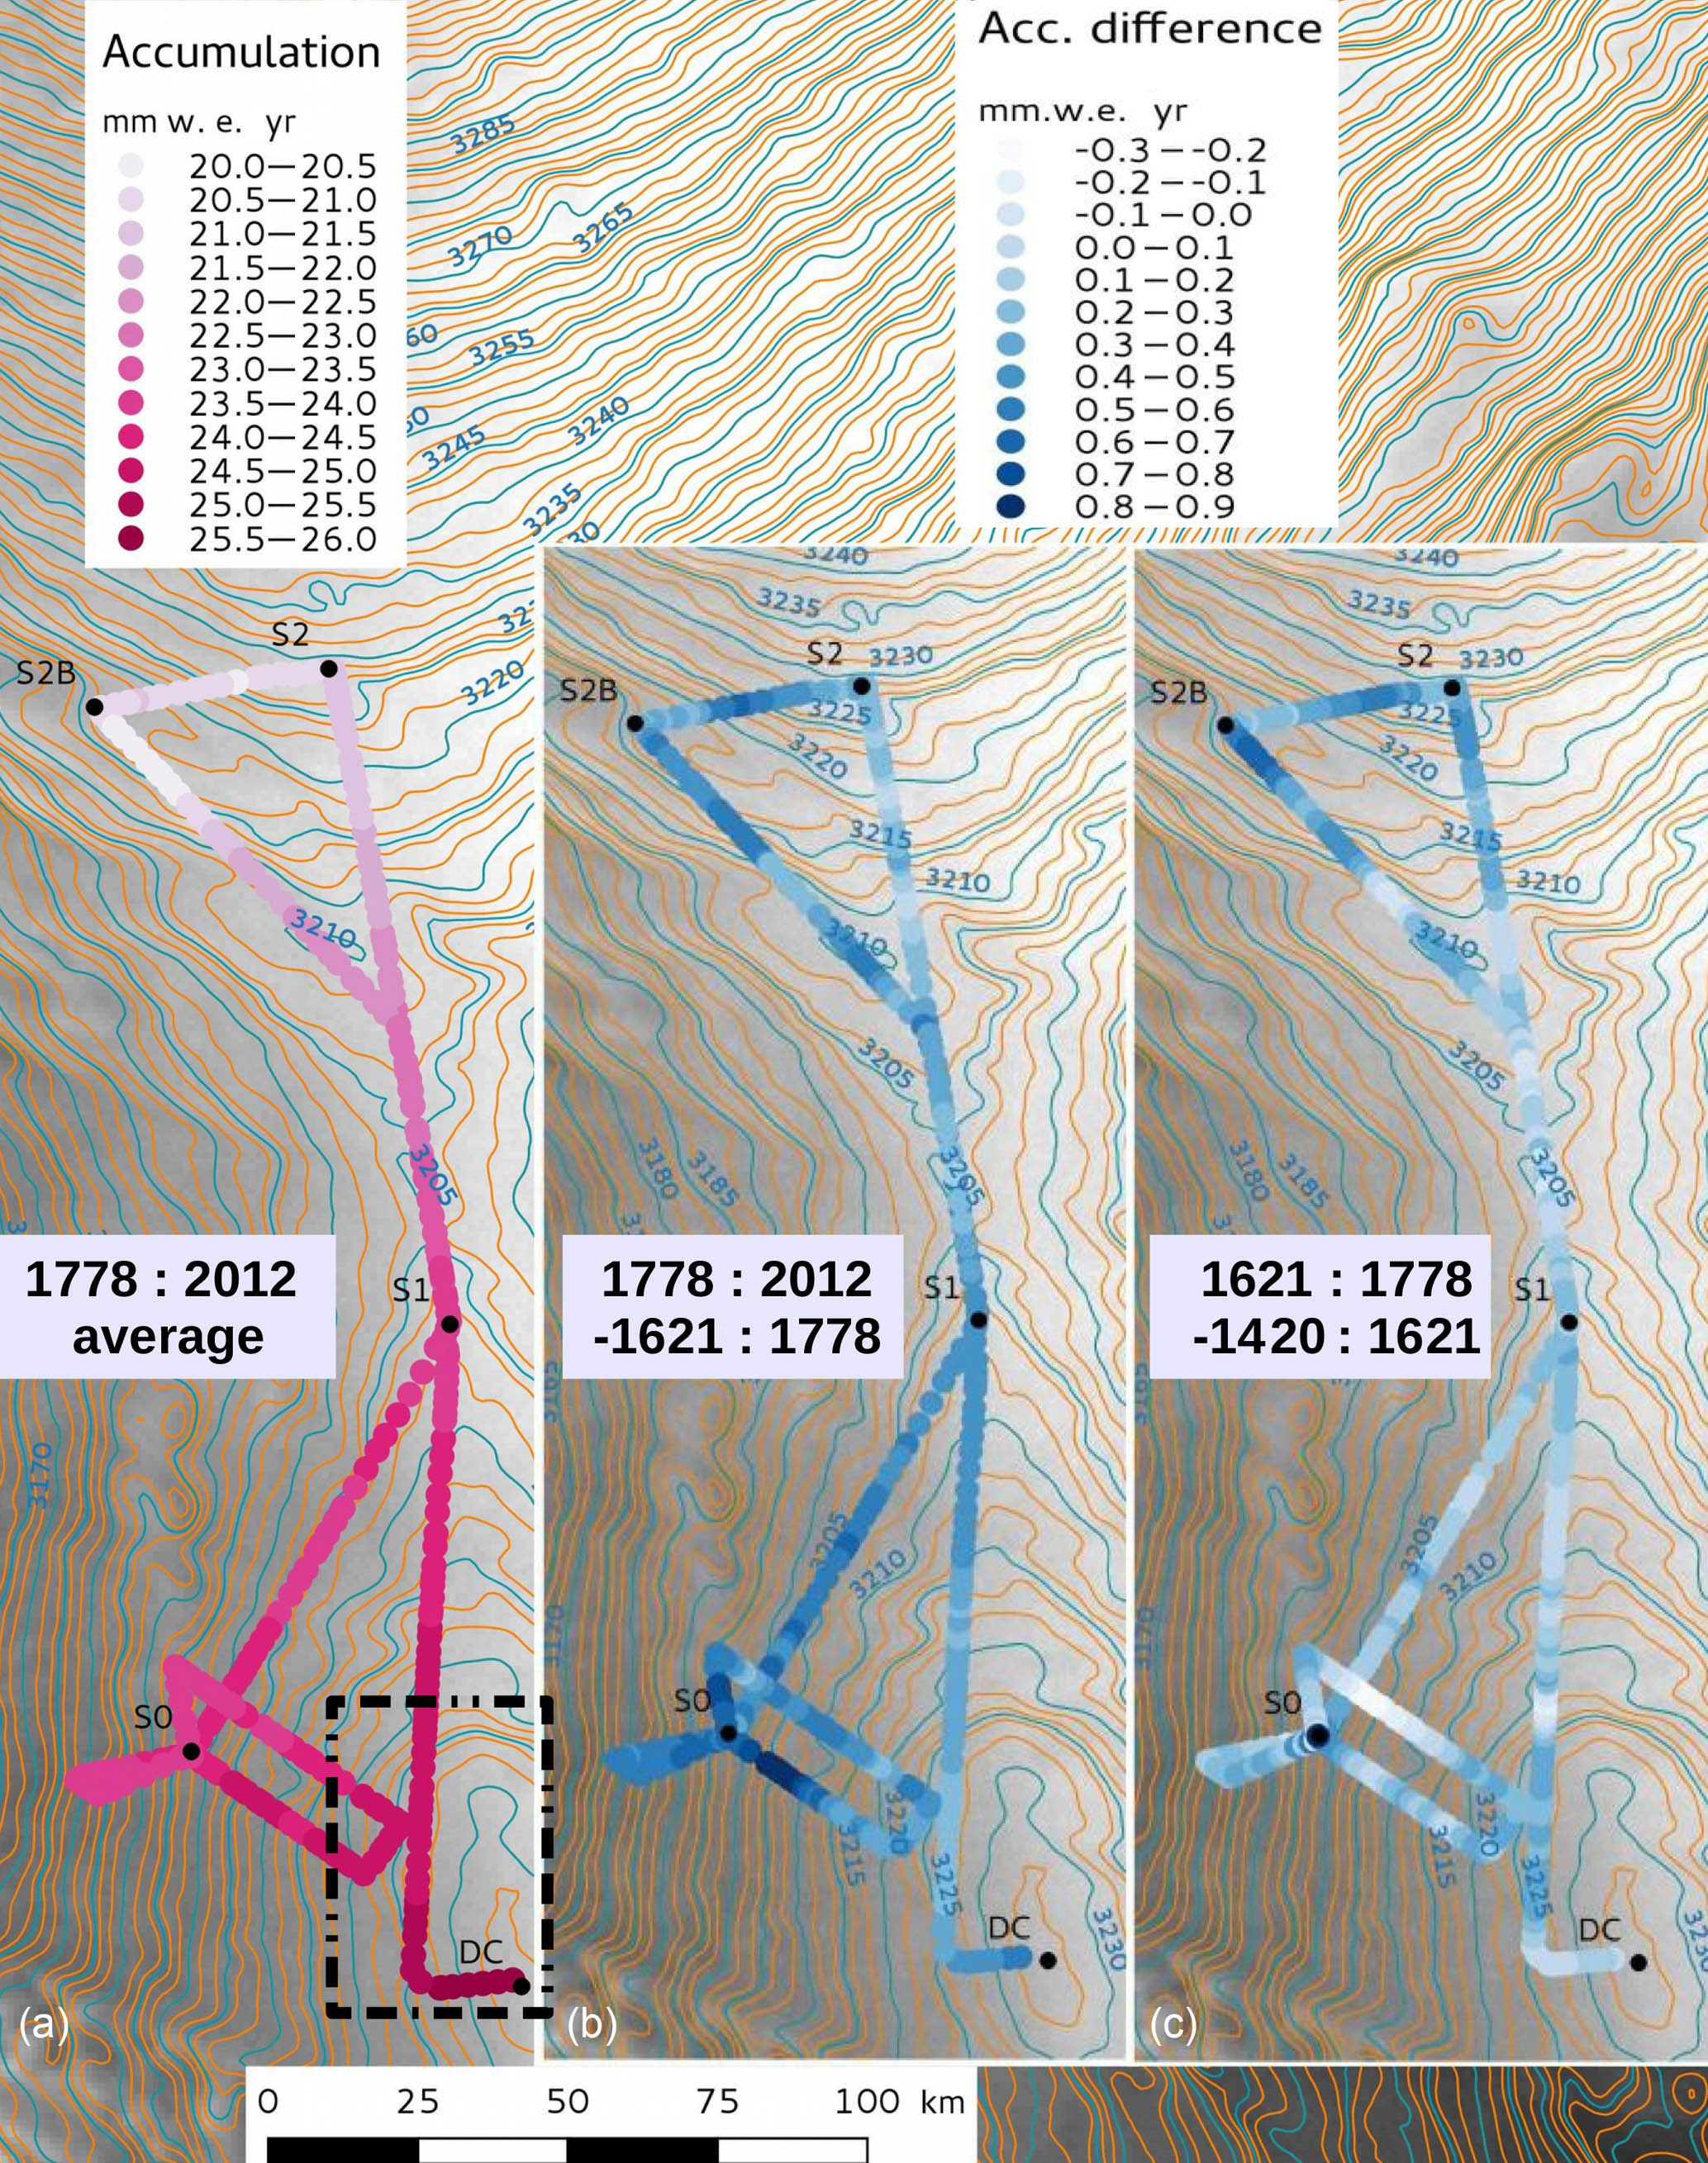 TC - Spatial and temporal distributions of surface mass